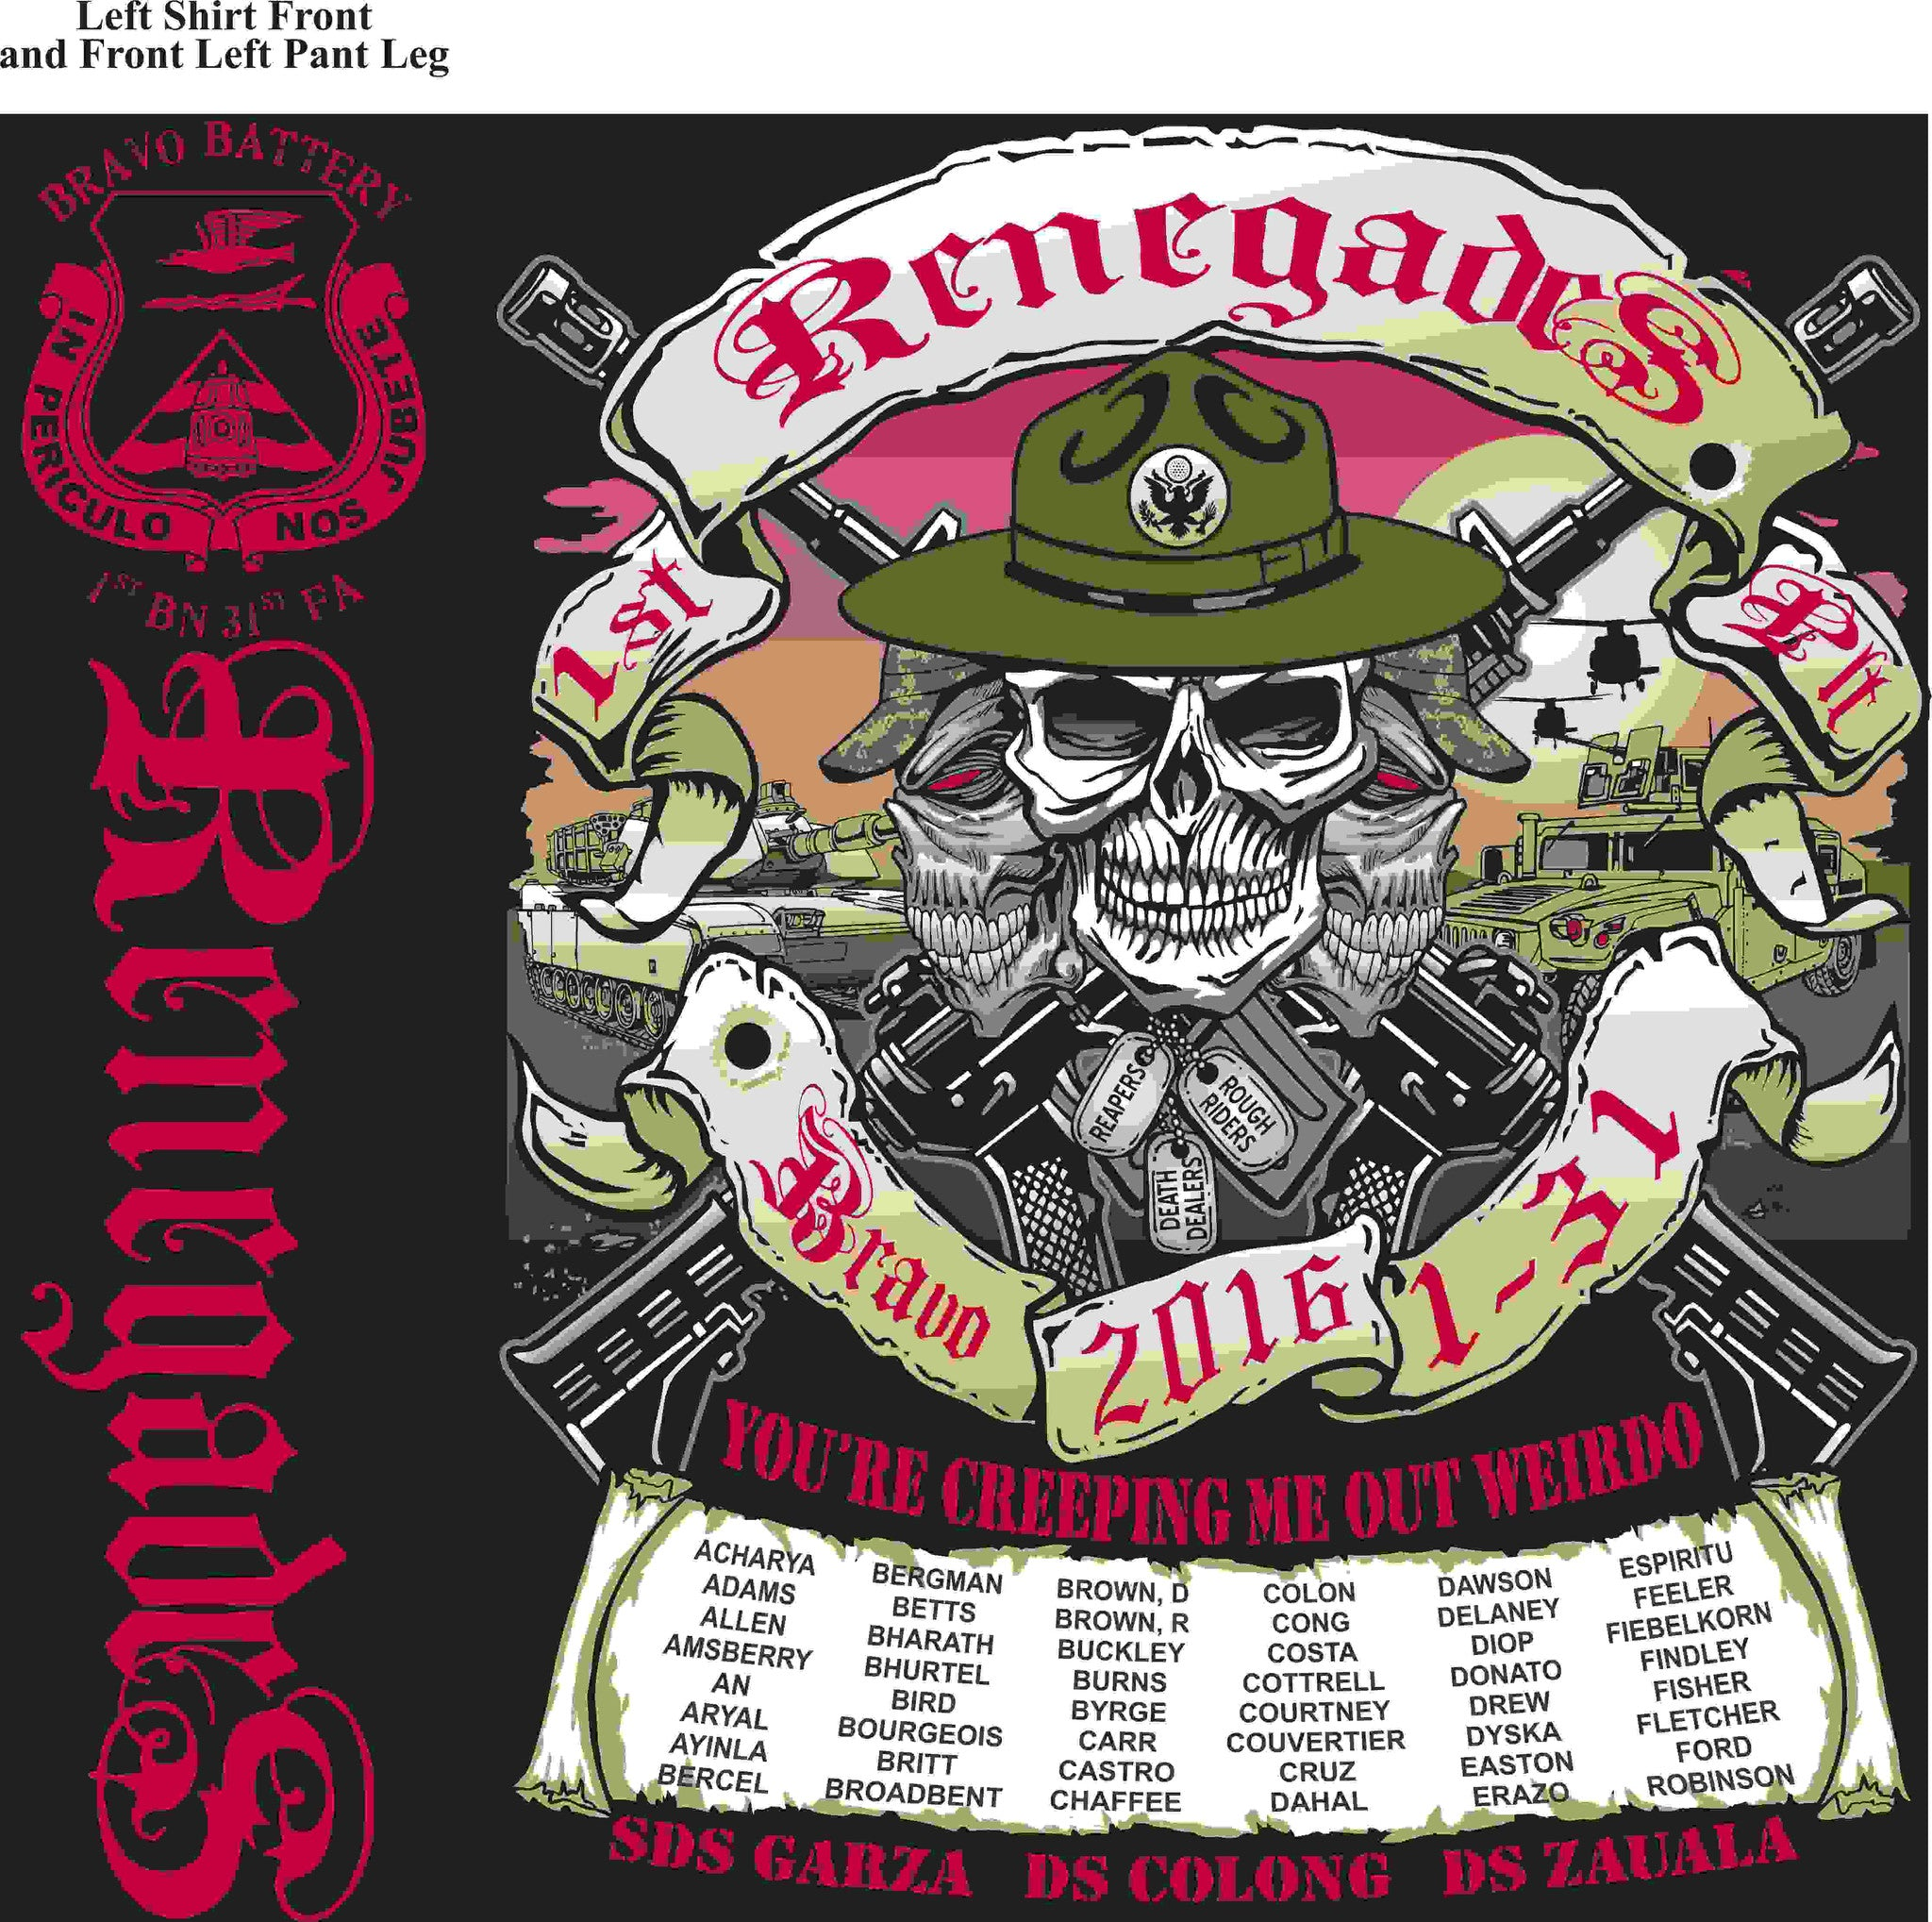 PLATOON SHIRTS (2nd generation print) BRAVO 1st 31st RENEGADES MAR 2016